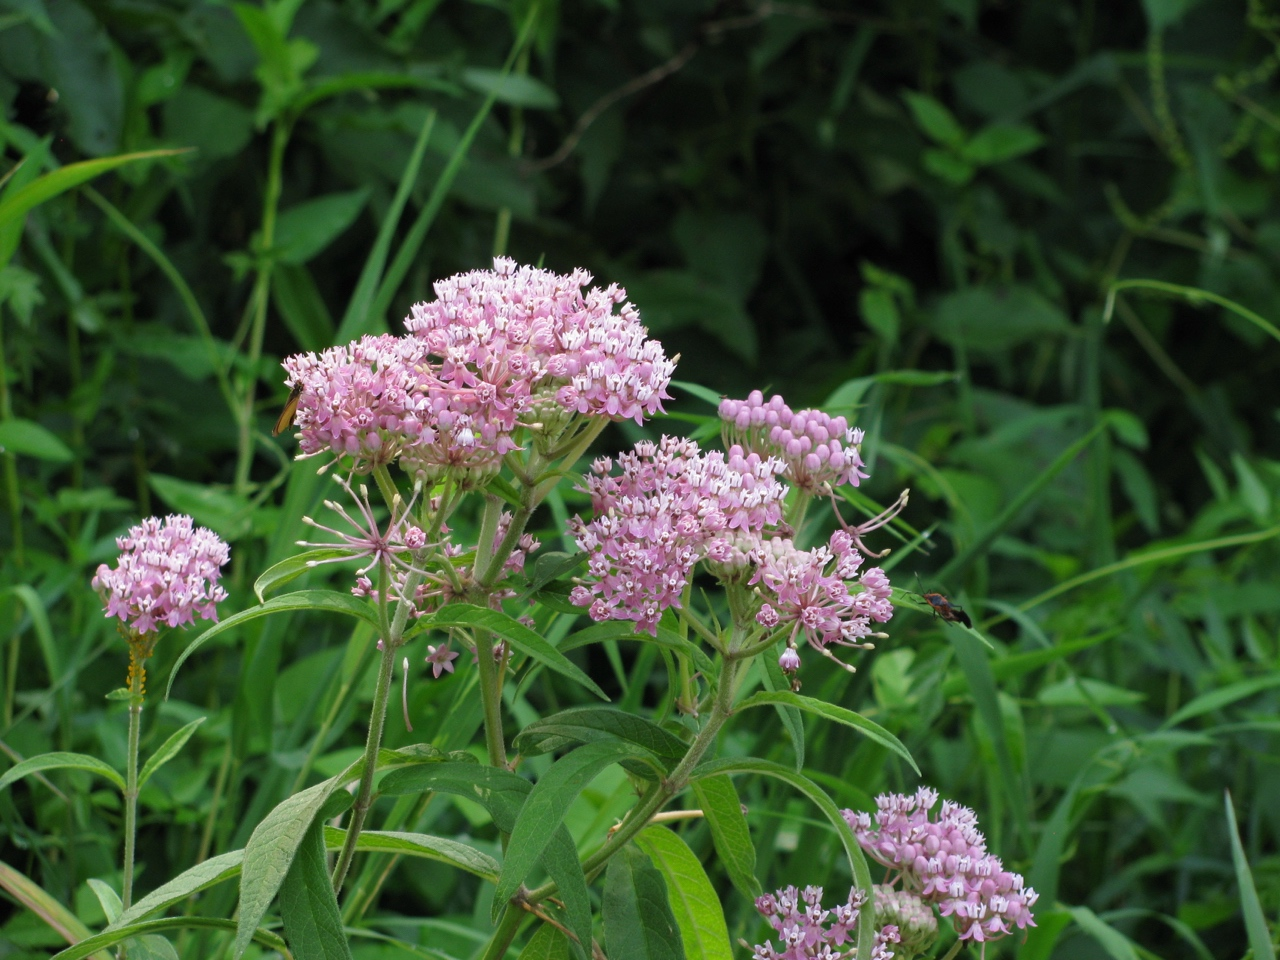 The Scientific Name is Asclepias incarnata var. pulchra. You will likely hear them called Eastern Swamp Milkweed. This picture shows the  of Asclepias incarnata var. pulchra